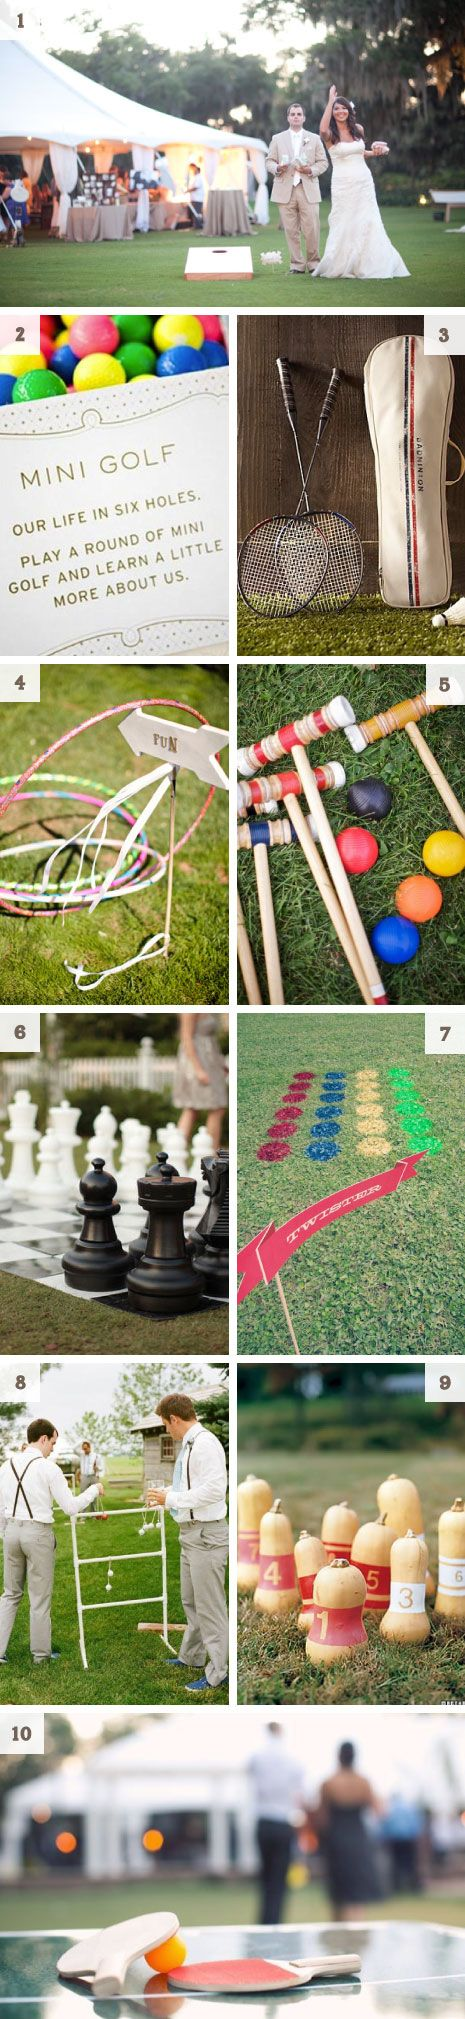 wedding lawn games for rehearsal dinner